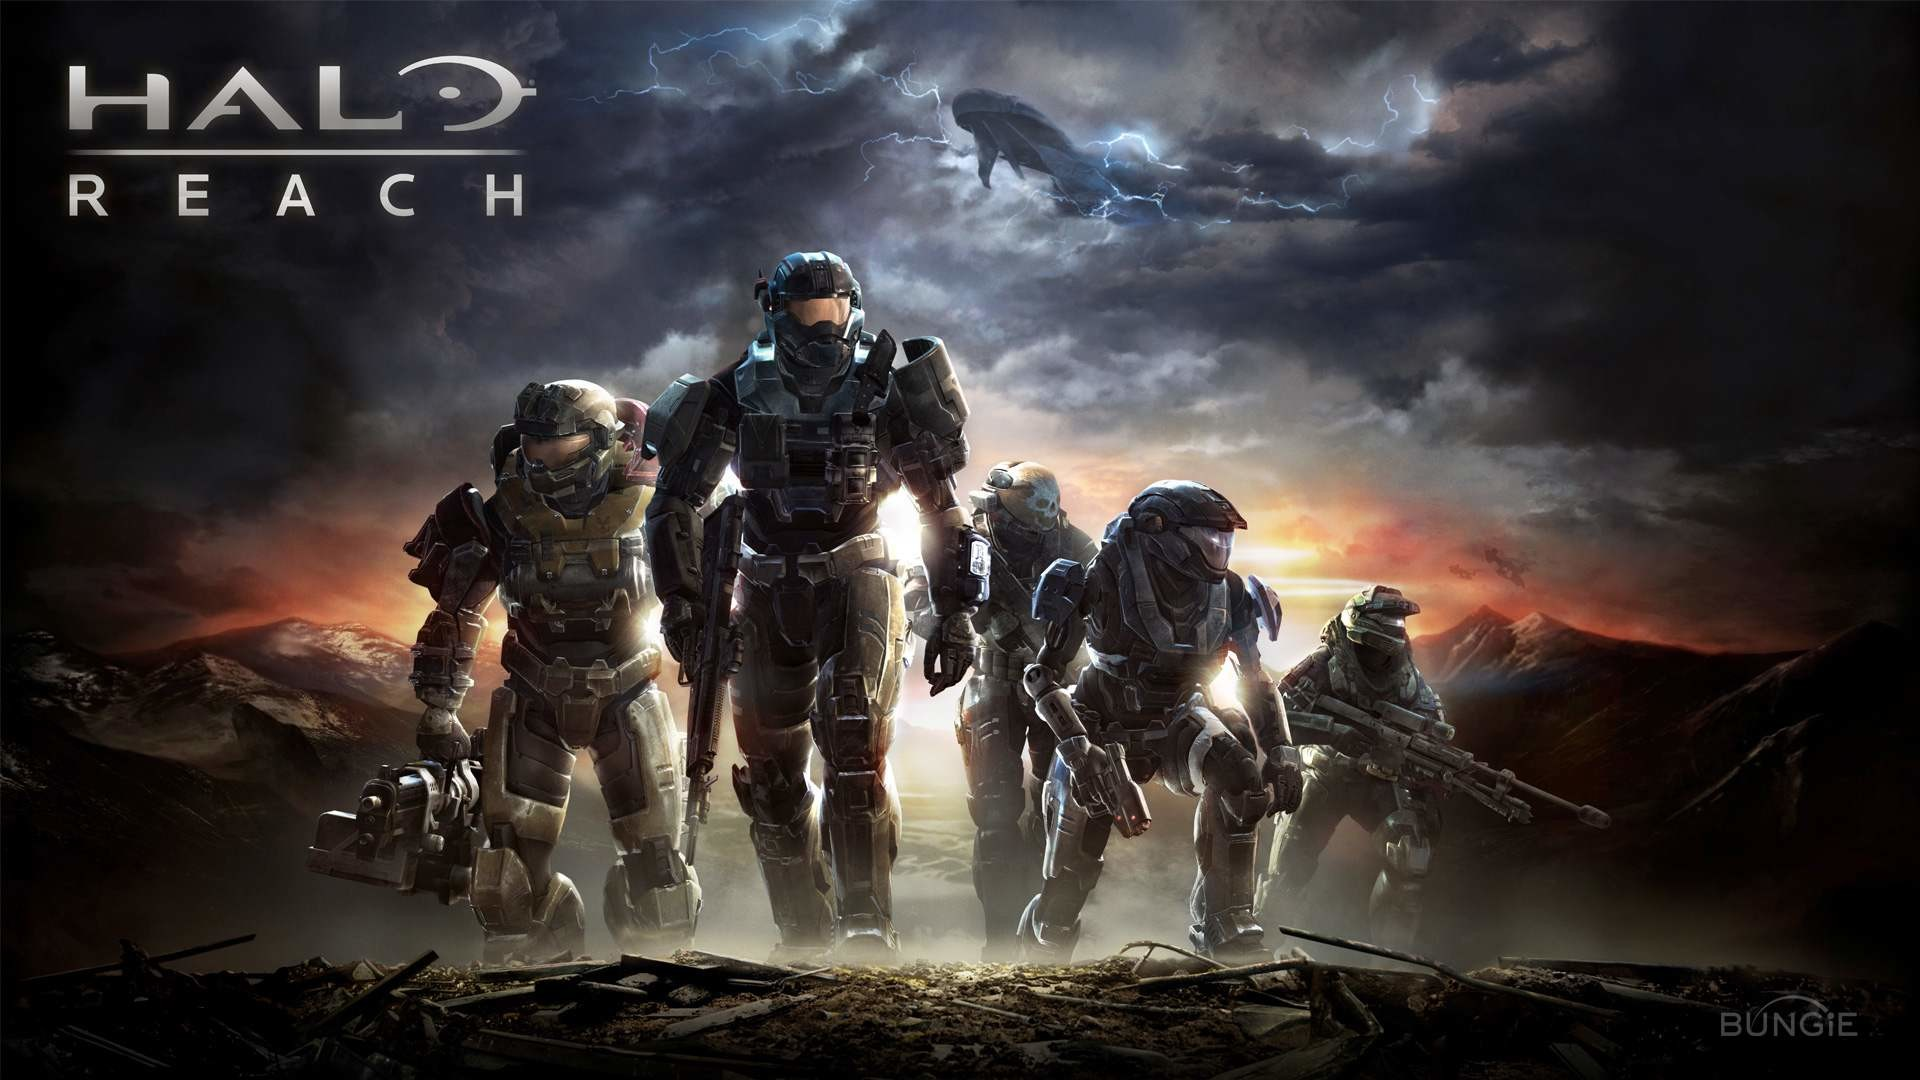 Halo Reach Wallpapers 1080p – Wallpaper Cave | Beautiful Wallpapers |  Pinterest | Halo reach, Wallpaper and Wallpaper art